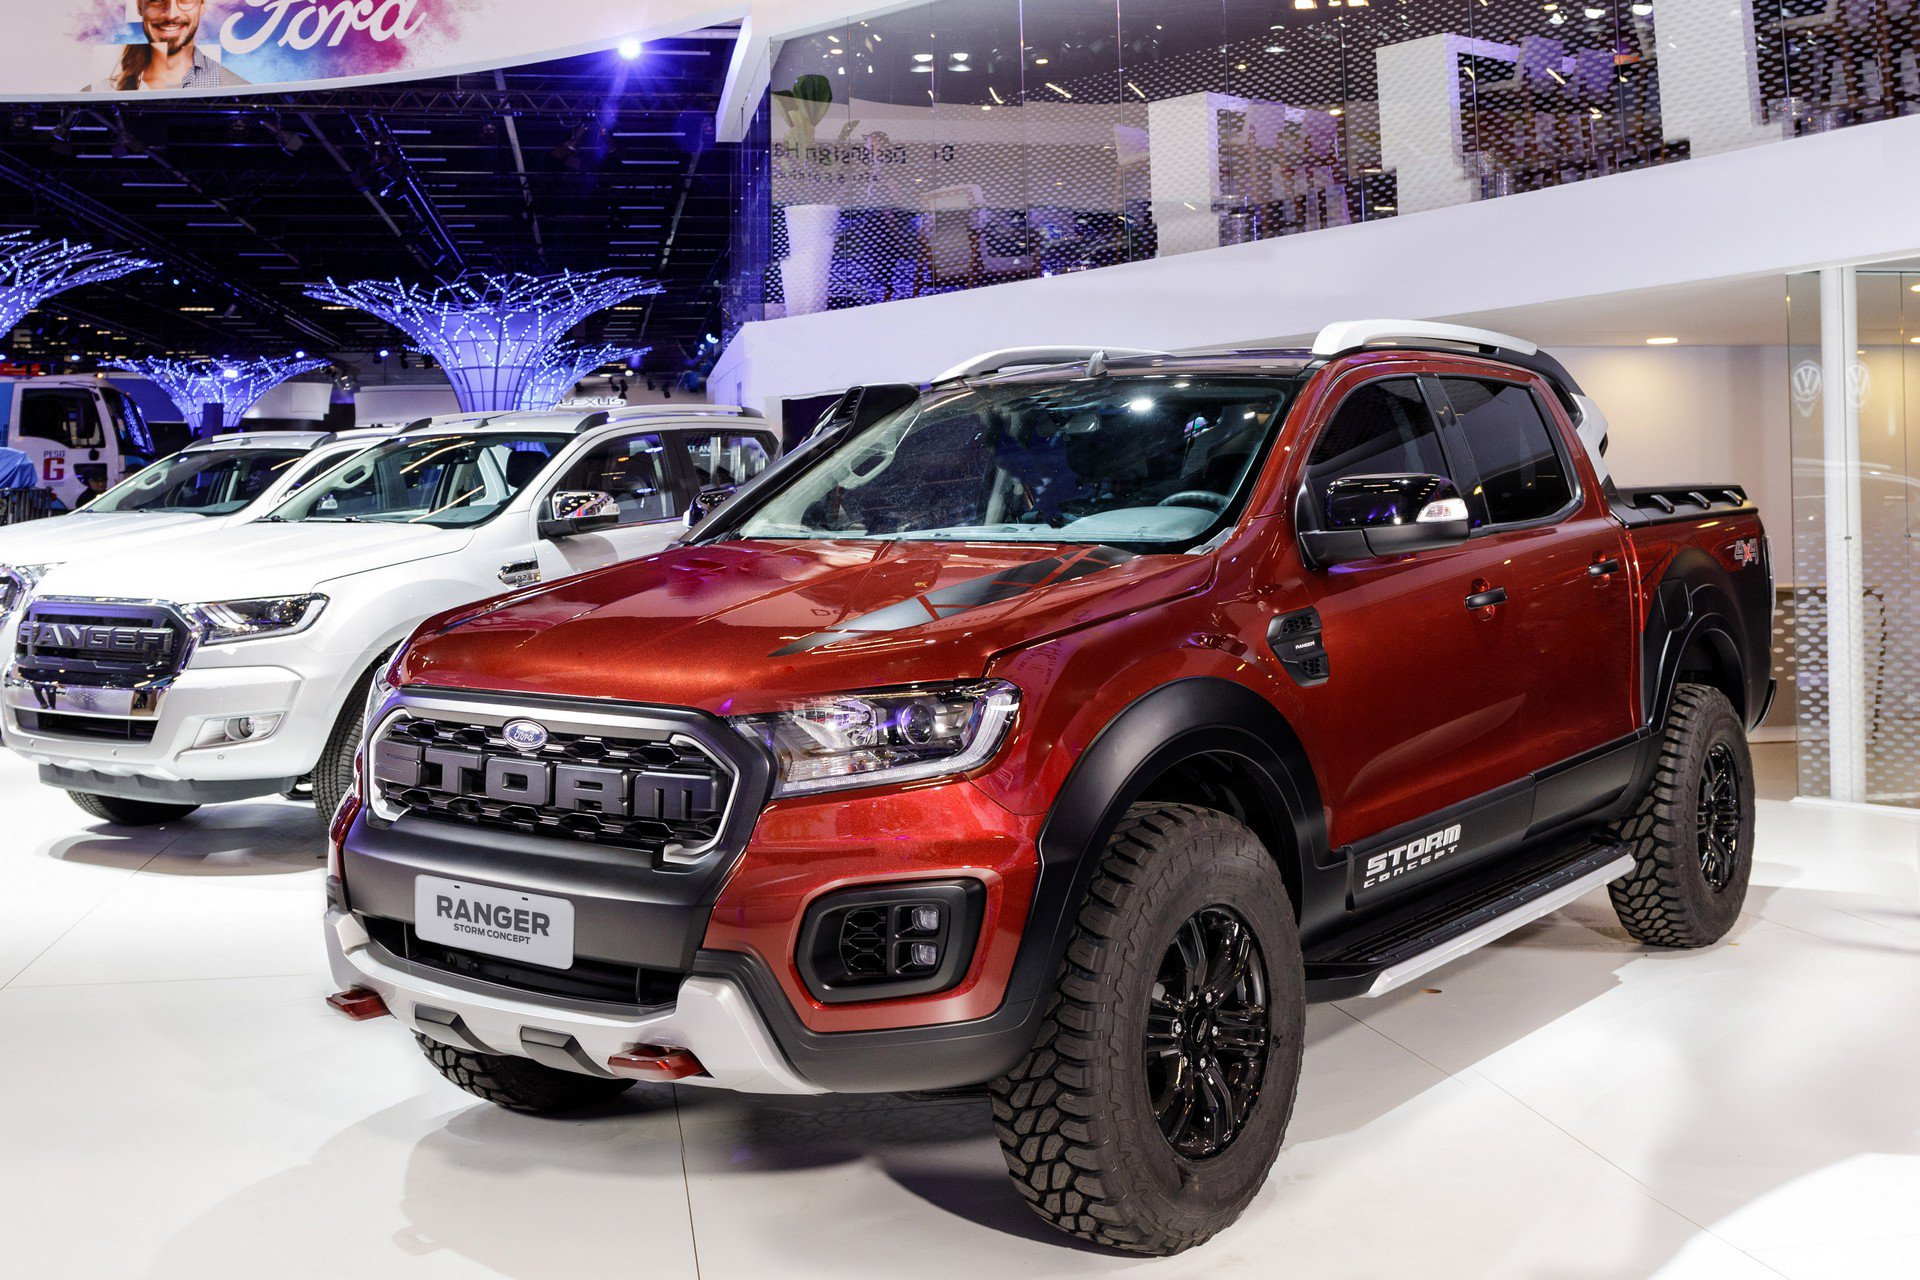 Ford Ranger Storm Concept and Ka Urban Warrior Concept (1)